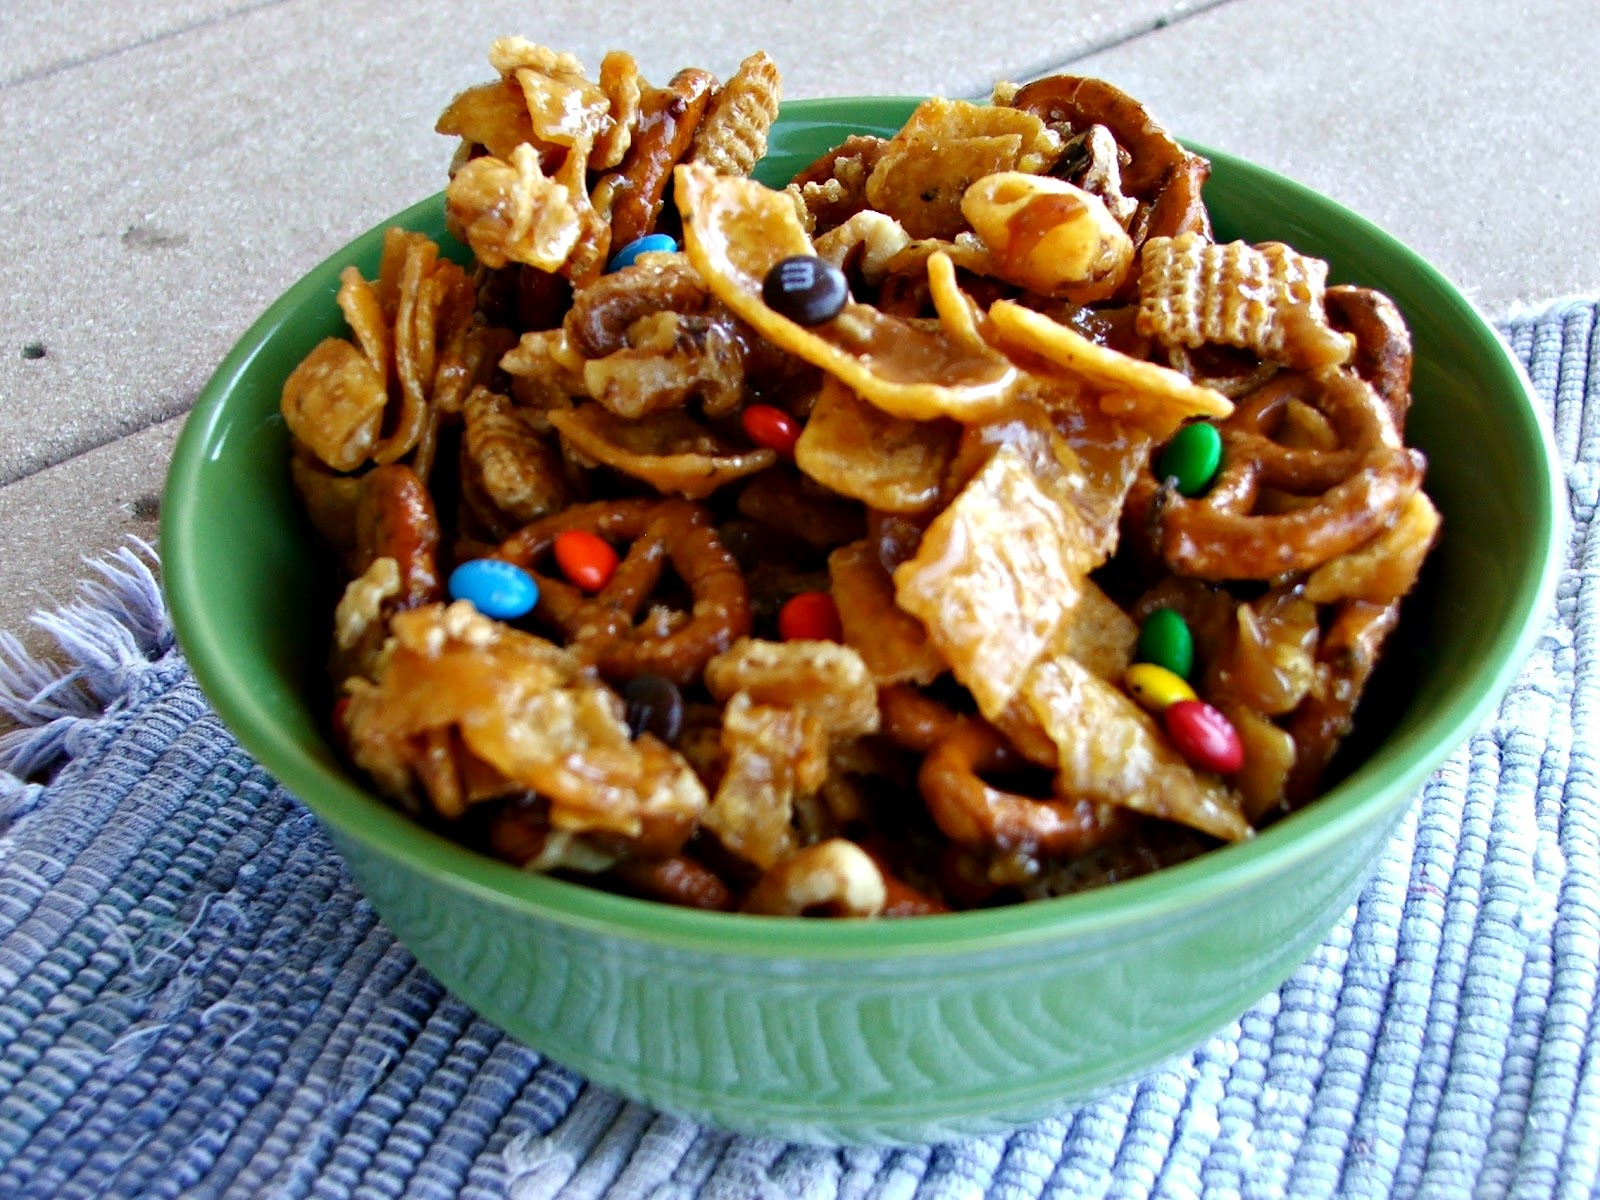 Double the Deliciousness: Frito Snack Mix